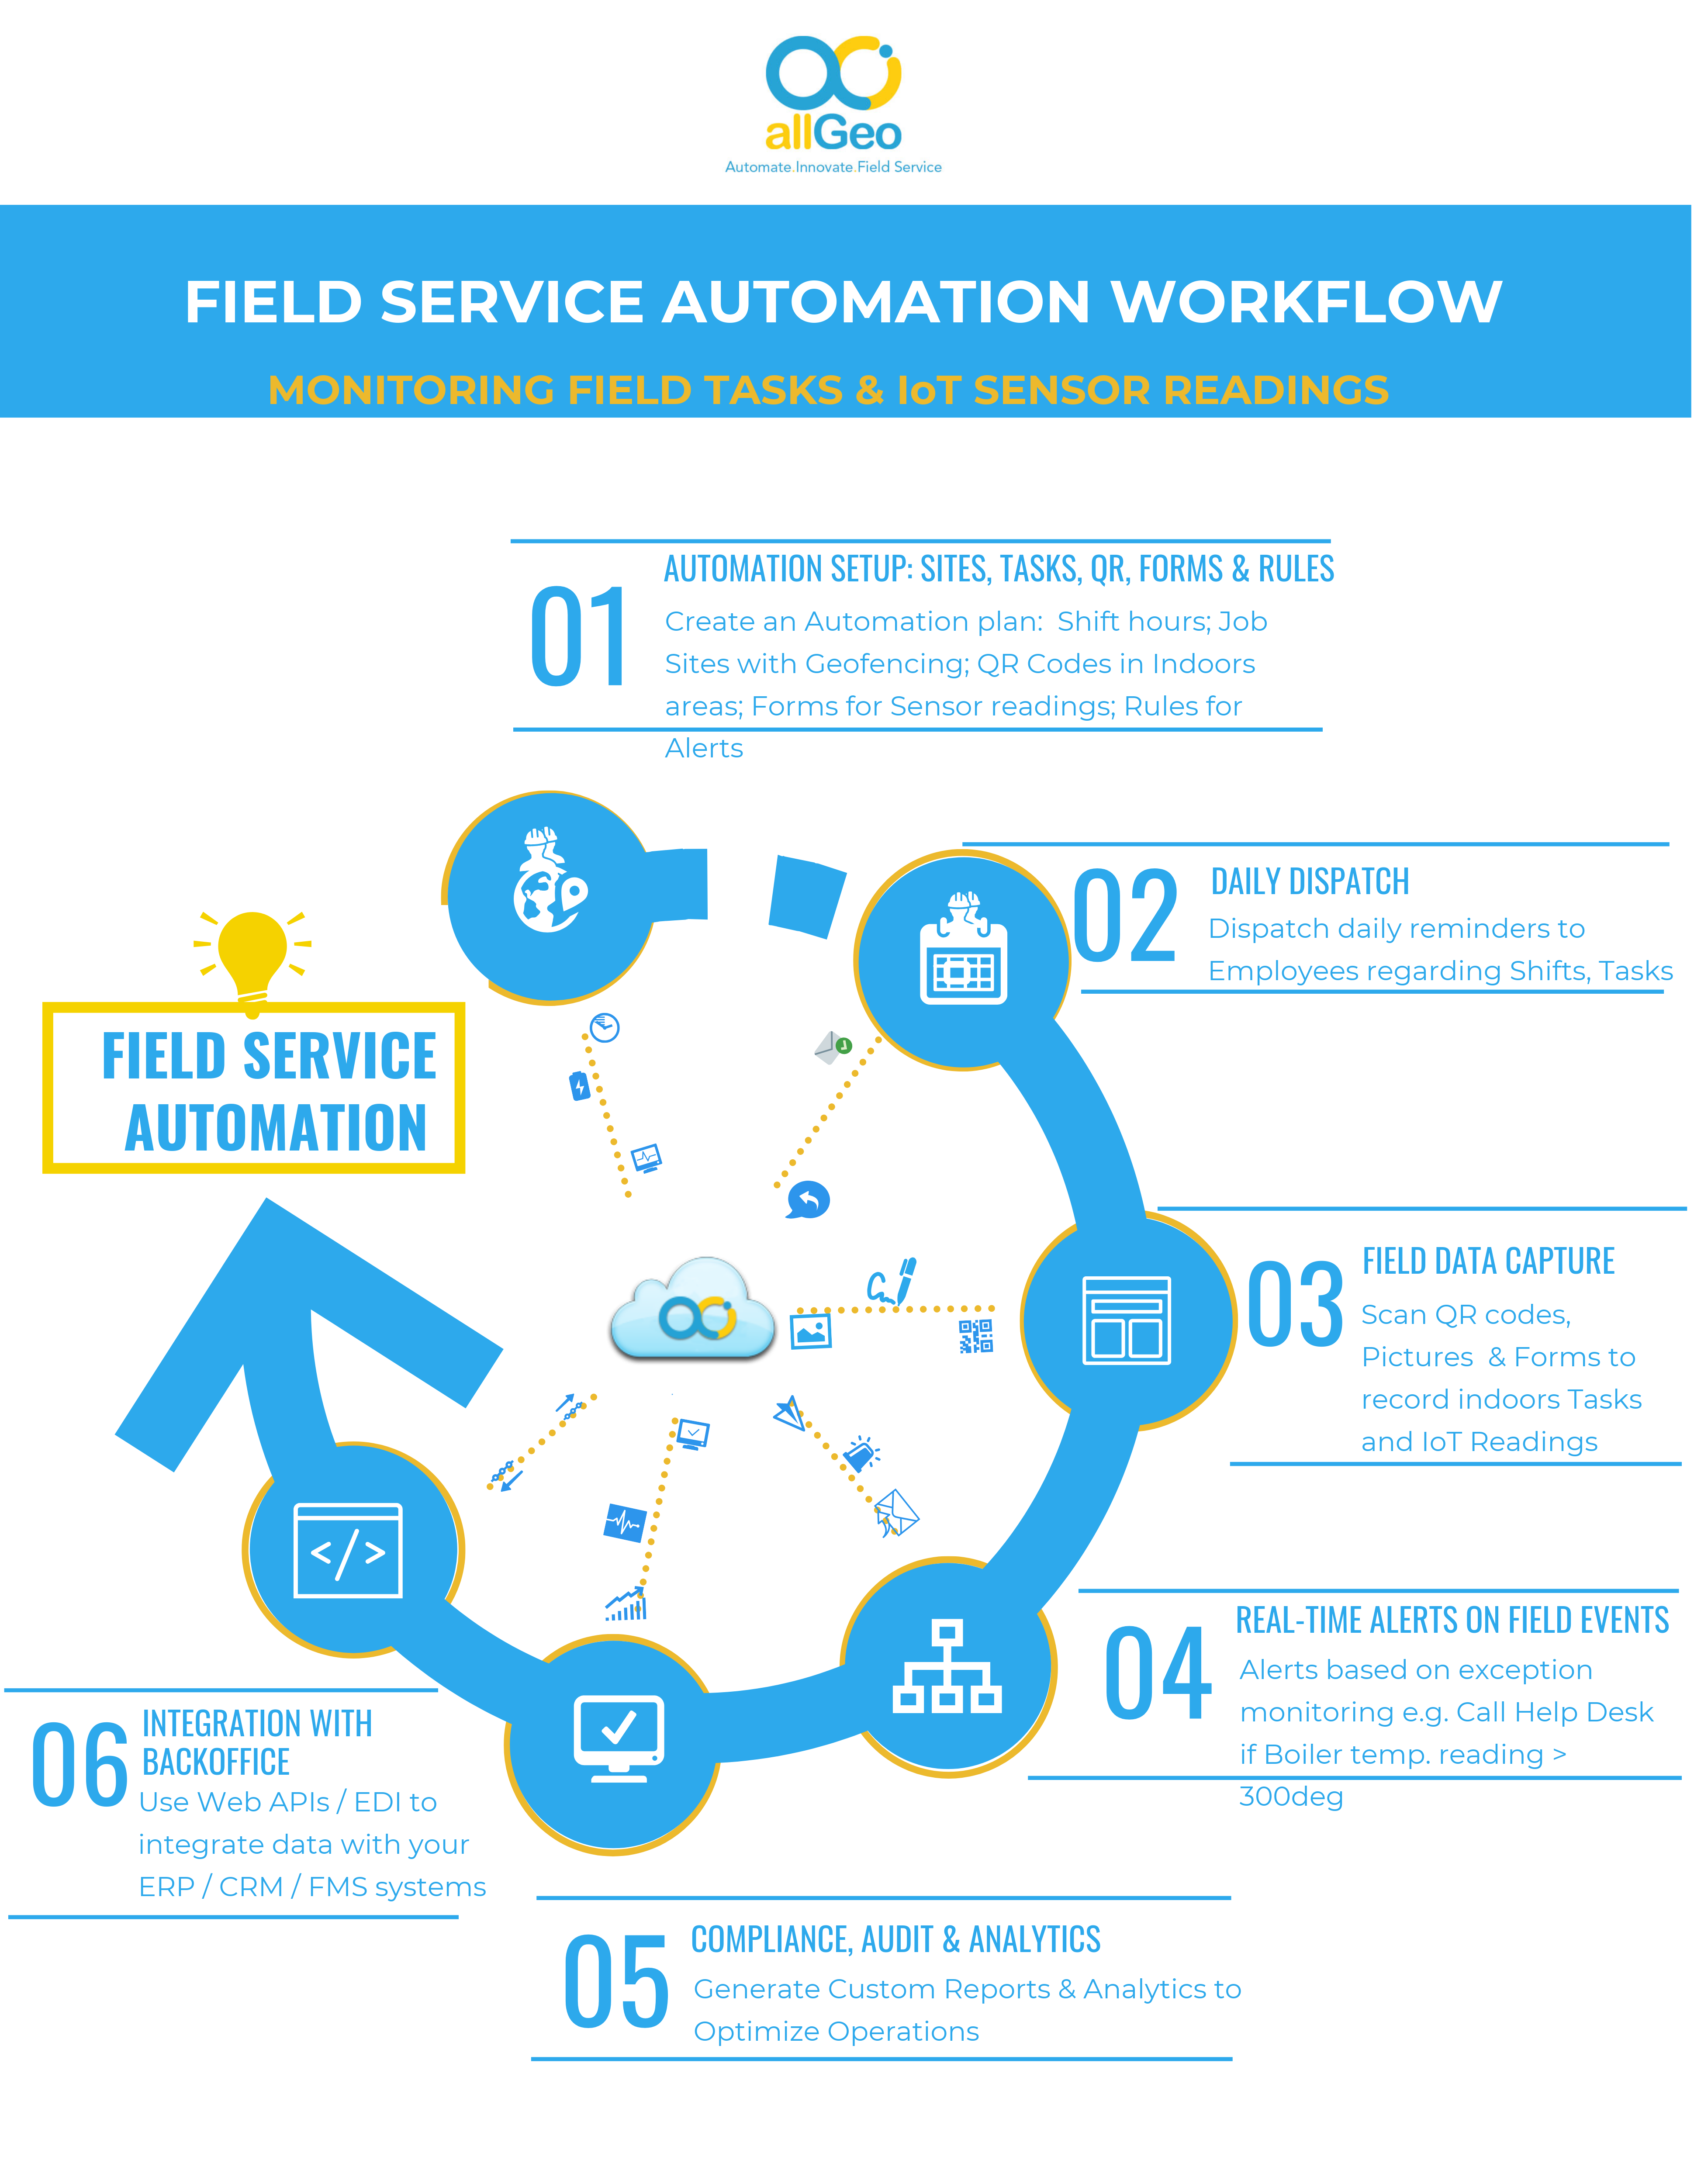 Field Service Automation workflow